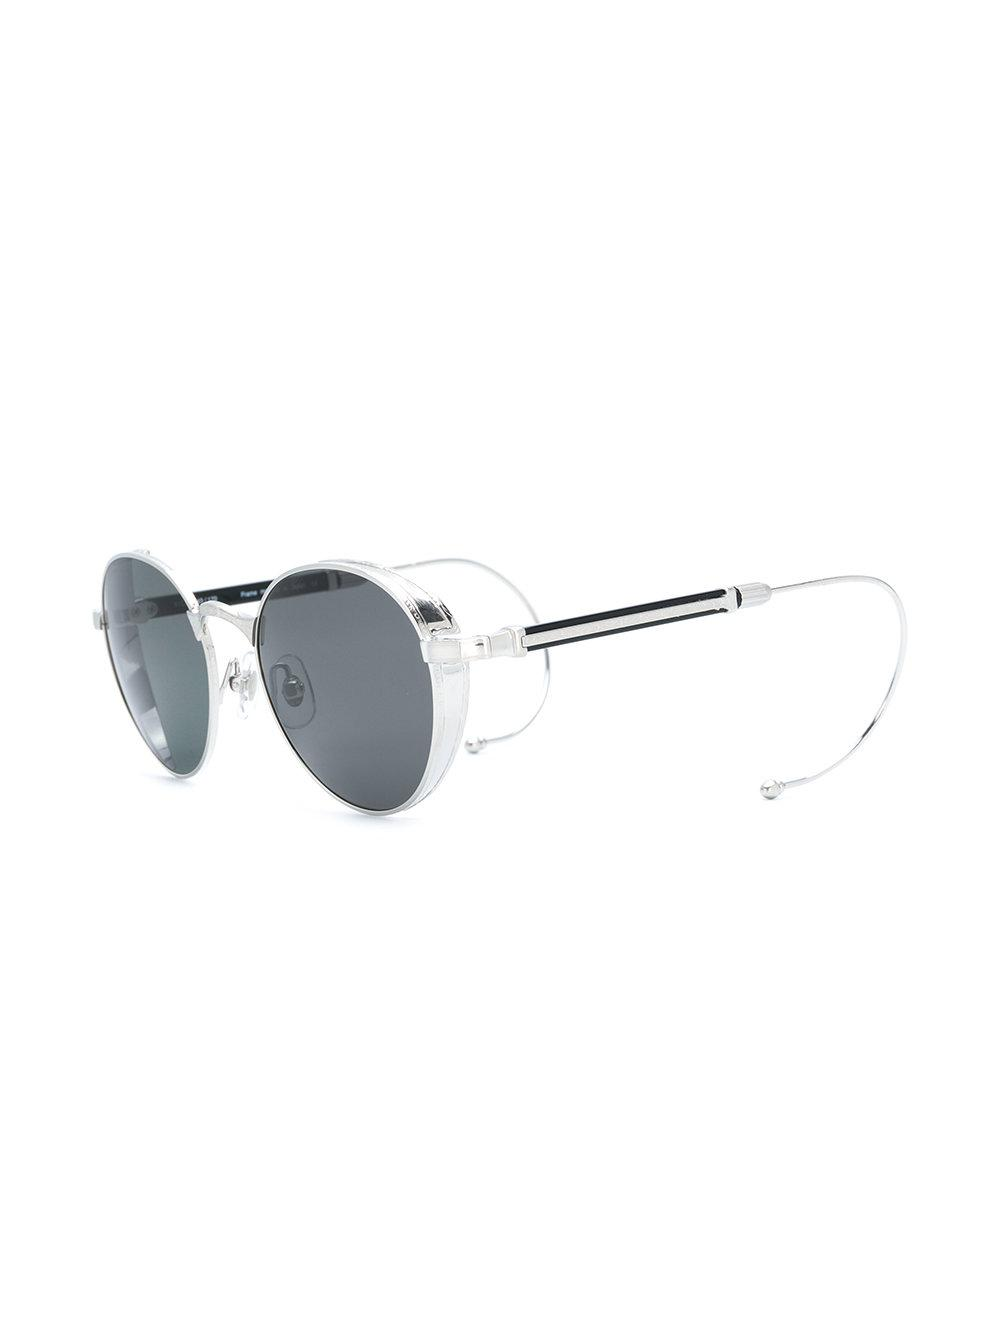 d700facee Lyst - Matsuda Round Shaped Sunglasses in Metallic